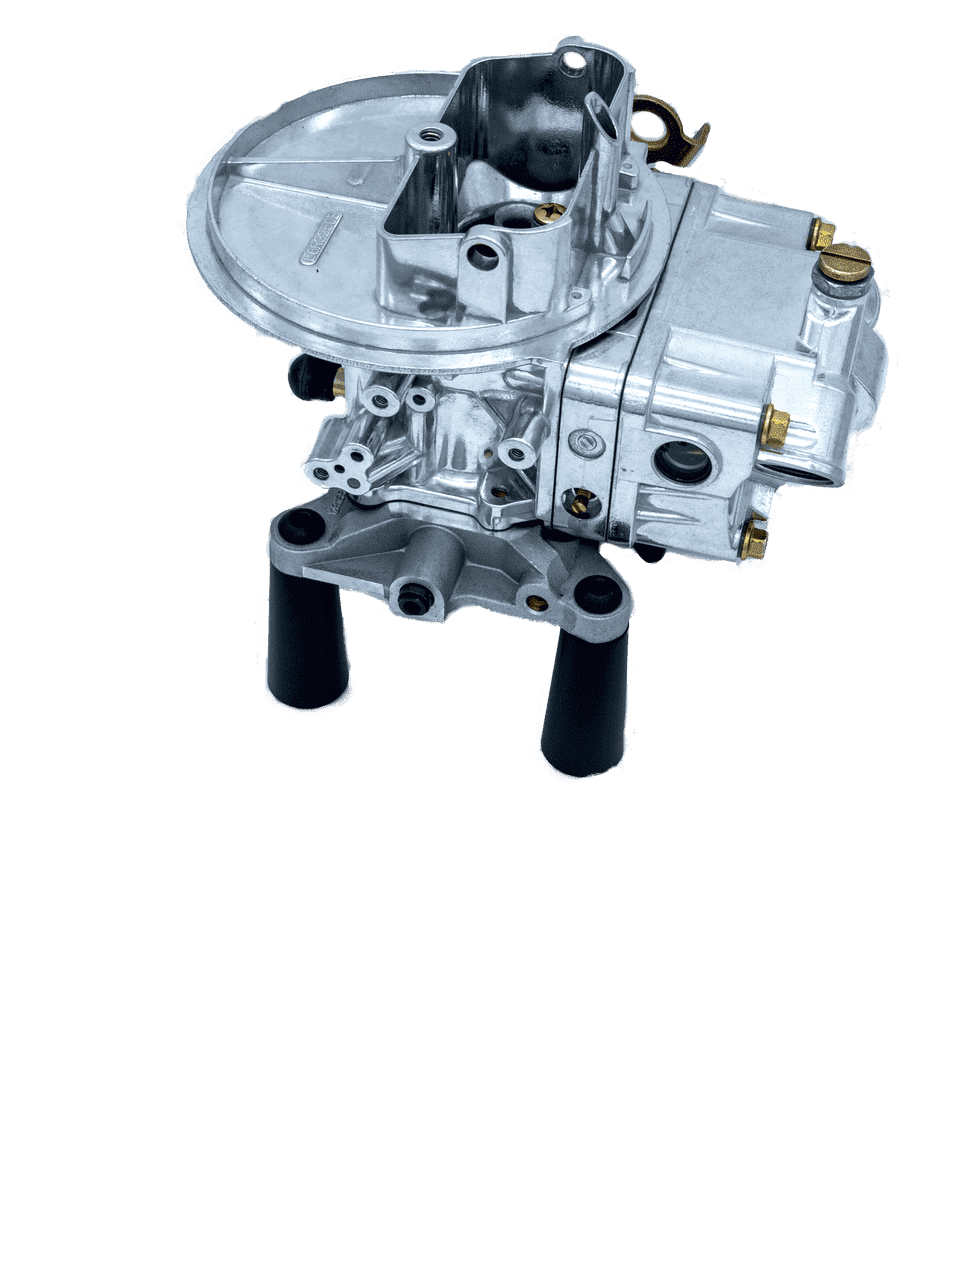 Willy's 500 cfm E-98 2 Barrel Carburetors